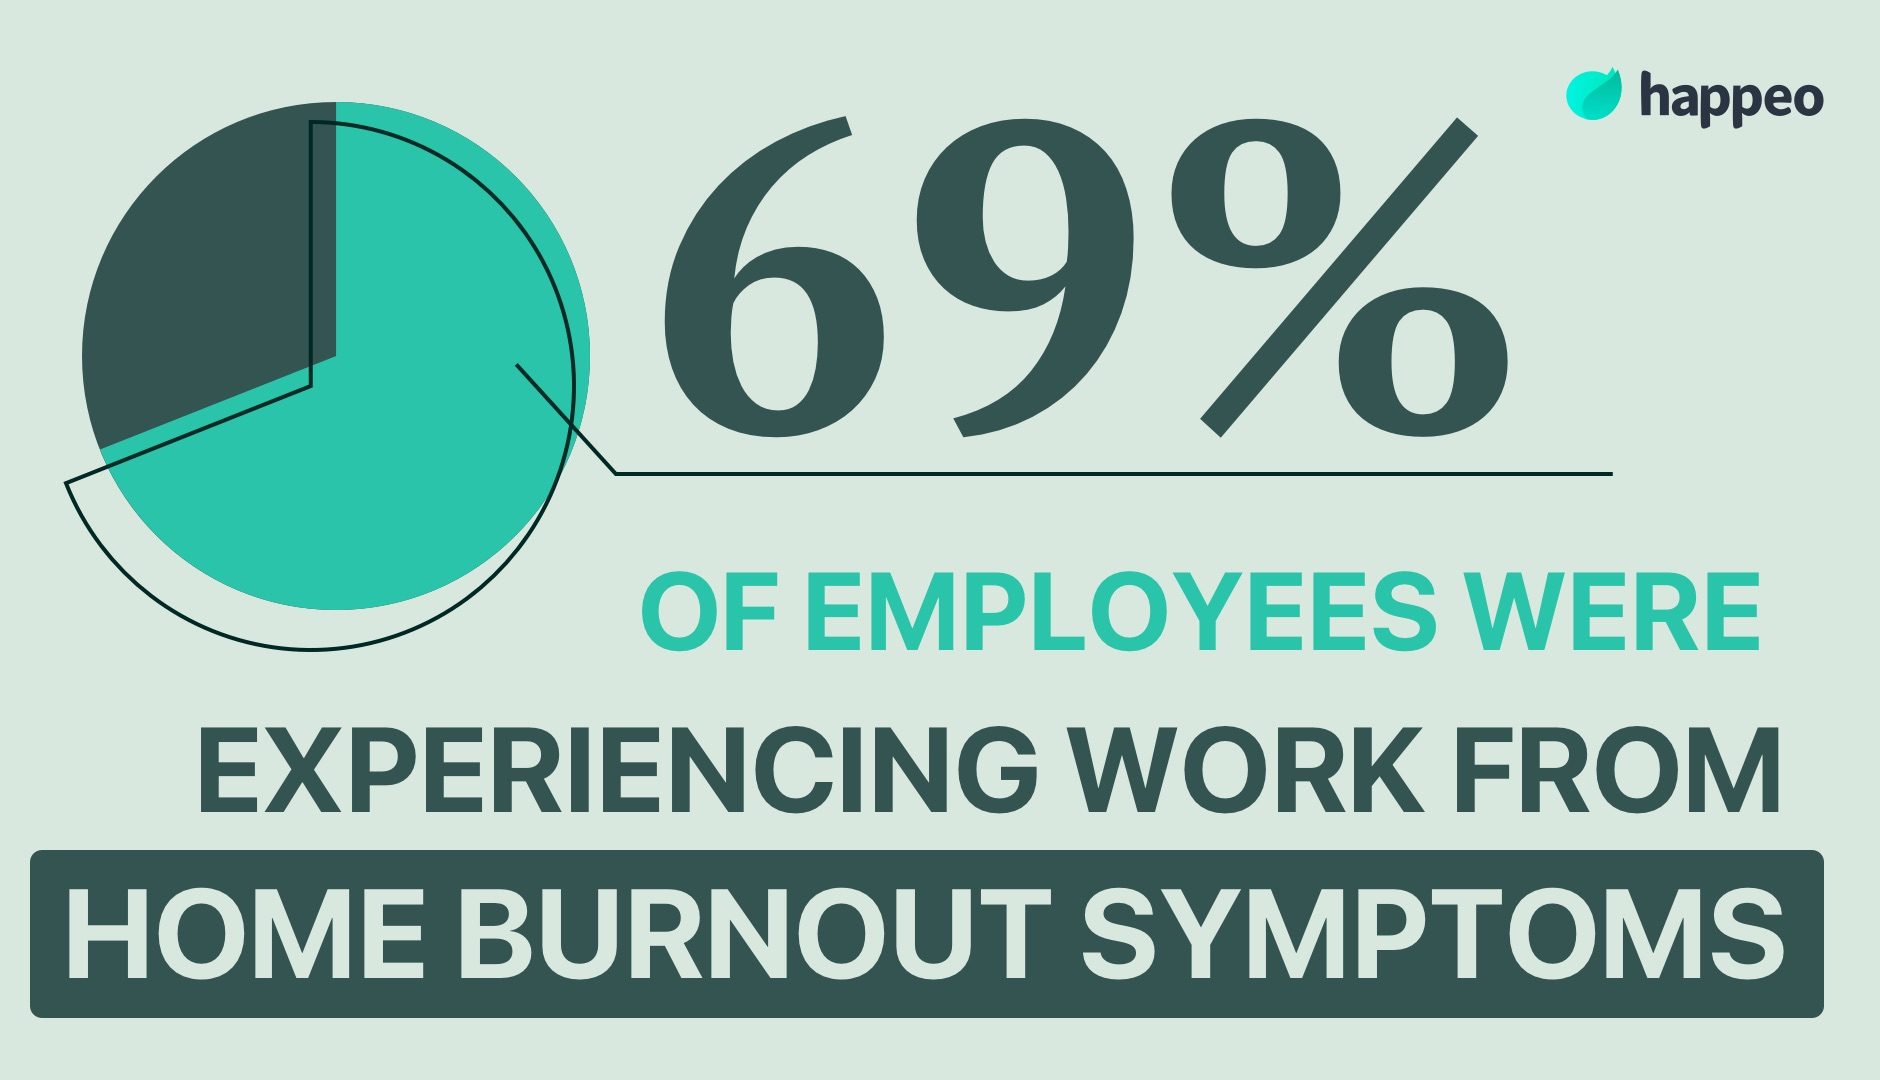 work from home burnout symptoms